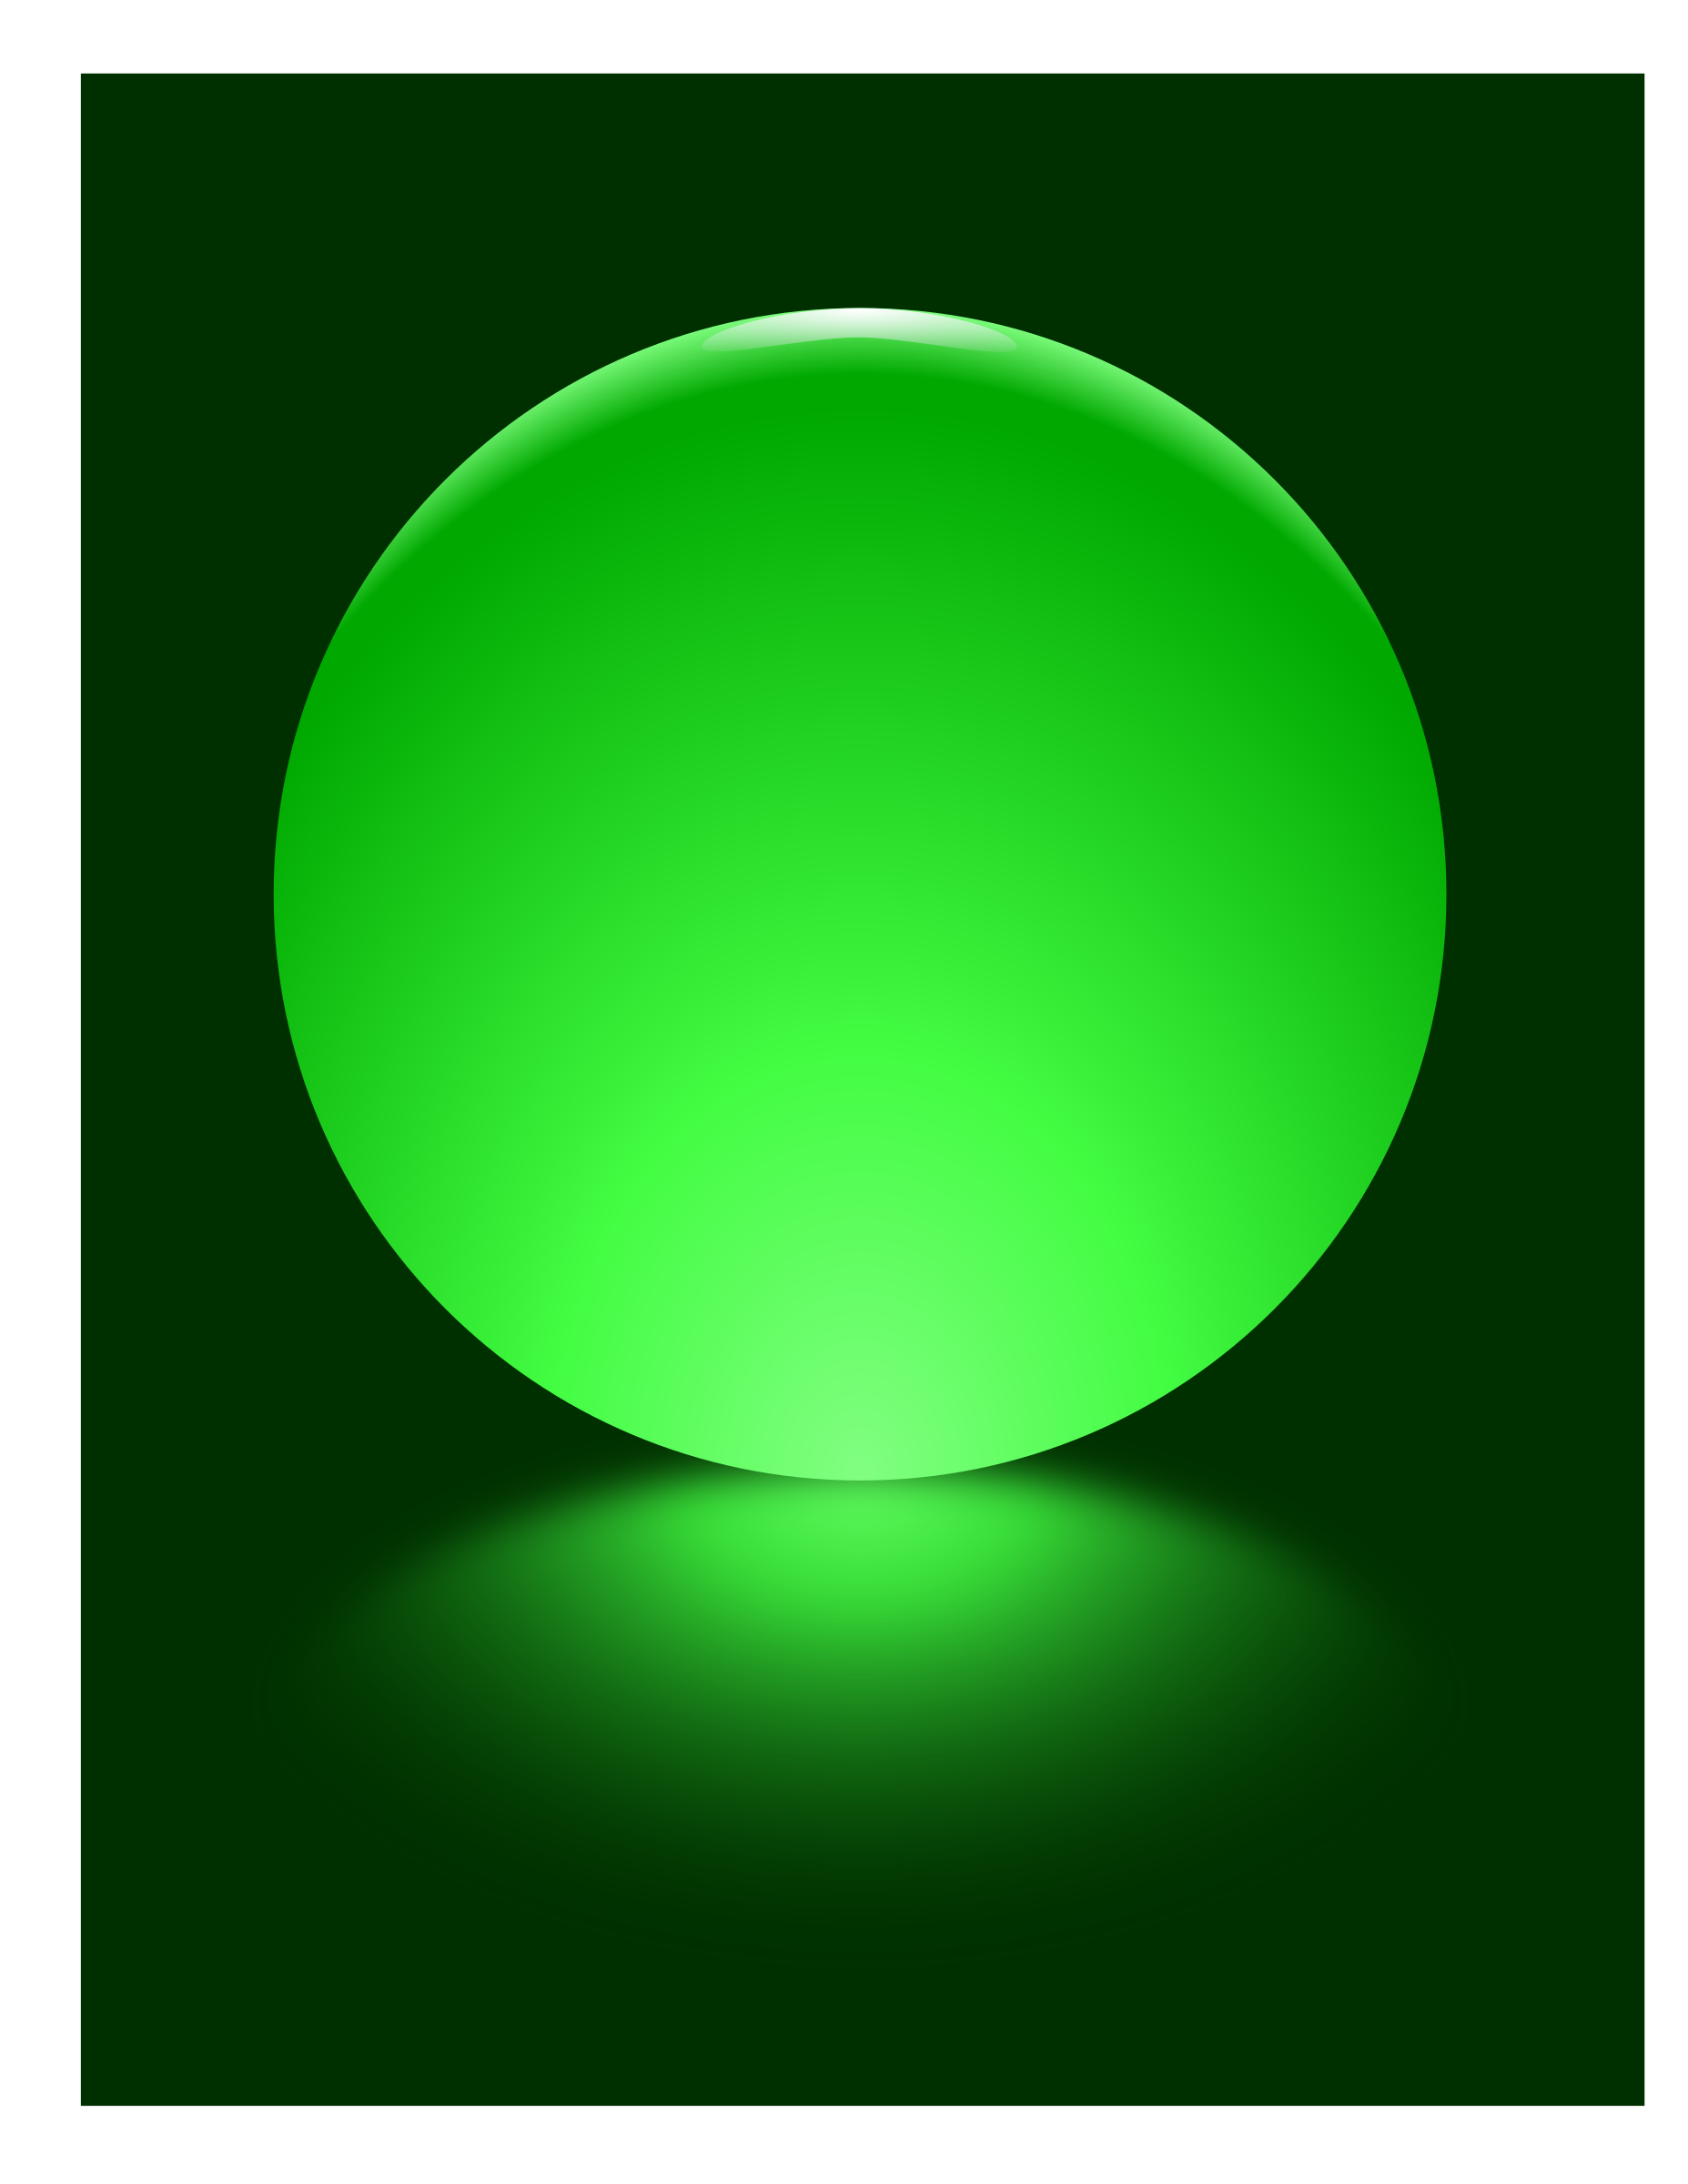 Green Sphere Blurred Reflection by djpaul